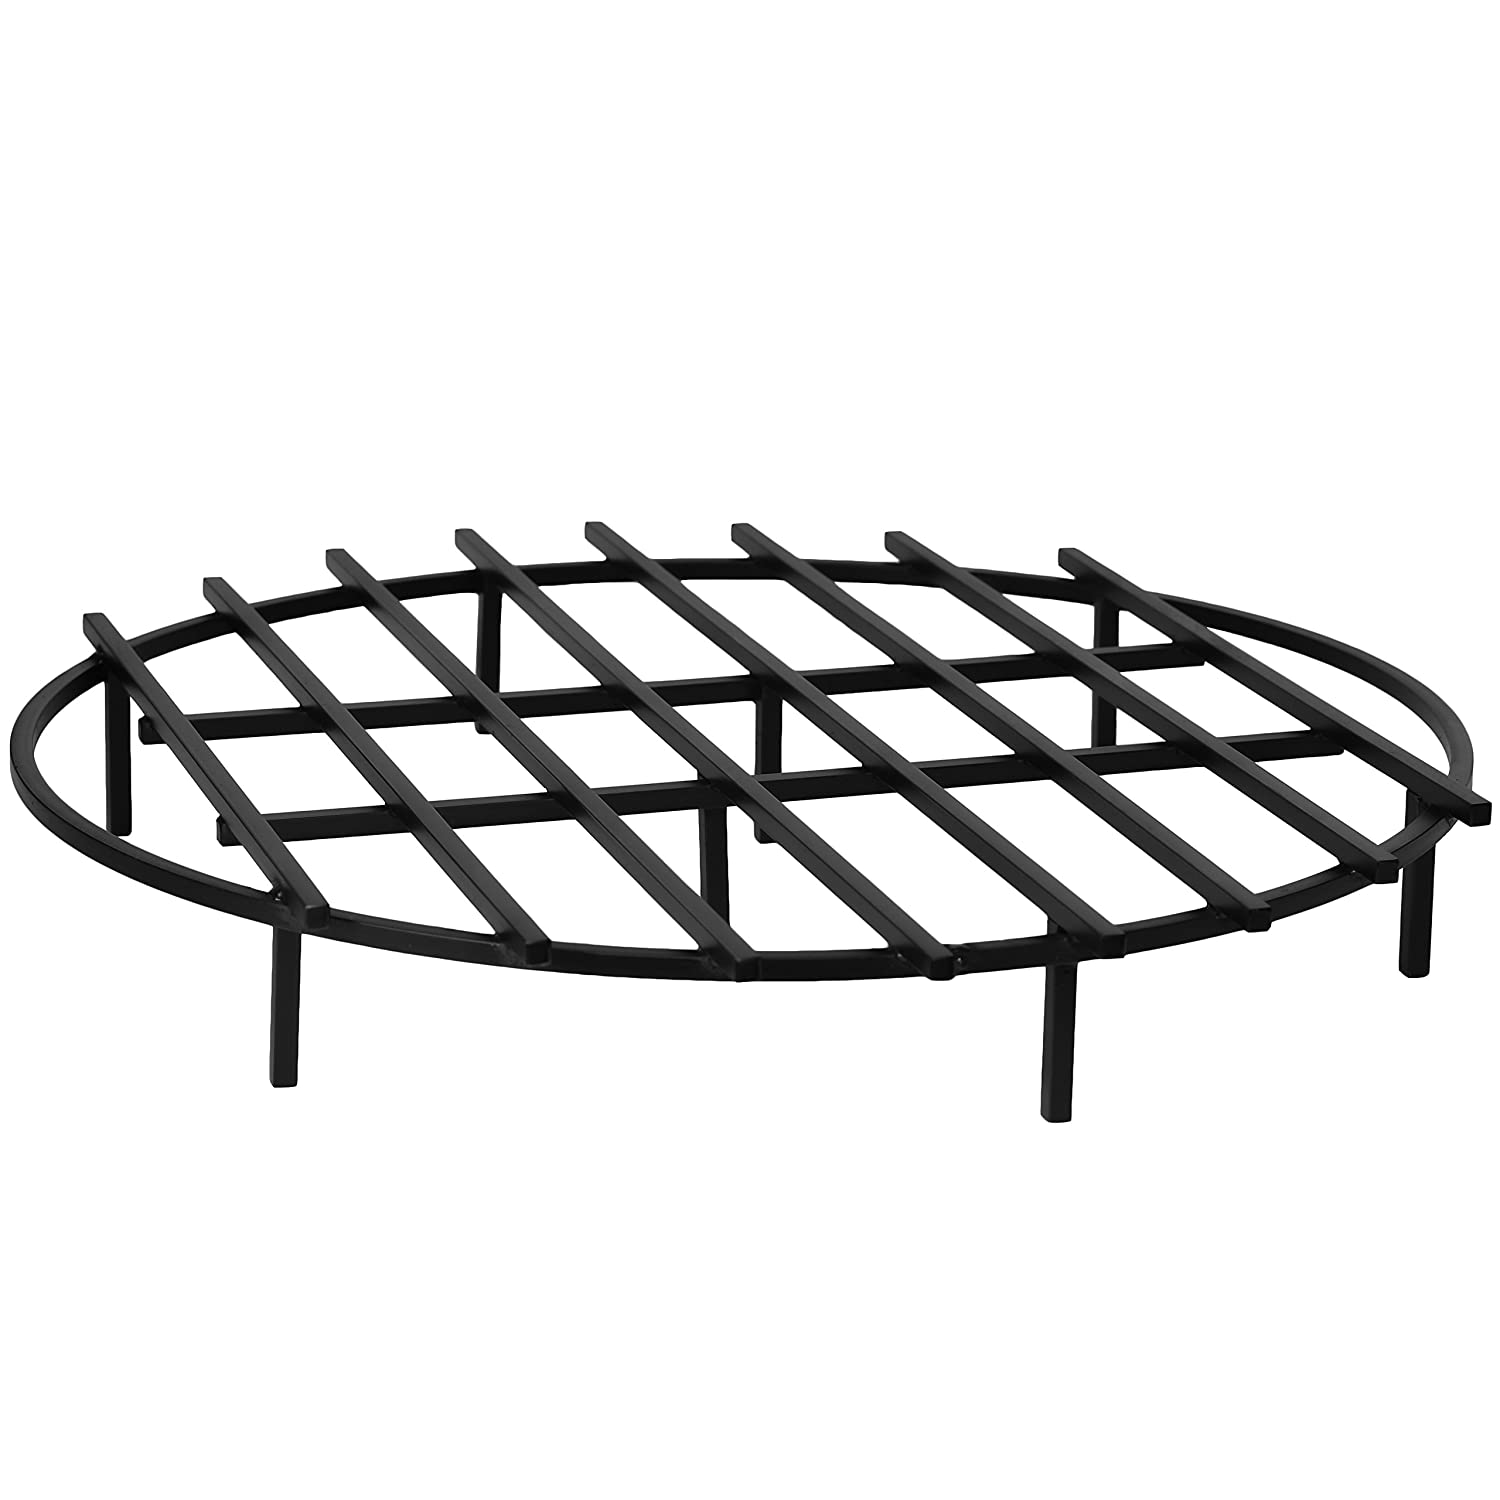 SteelFreak Classic Round Fire Pit Grate, 36 Inch Diameter – Made in The USA